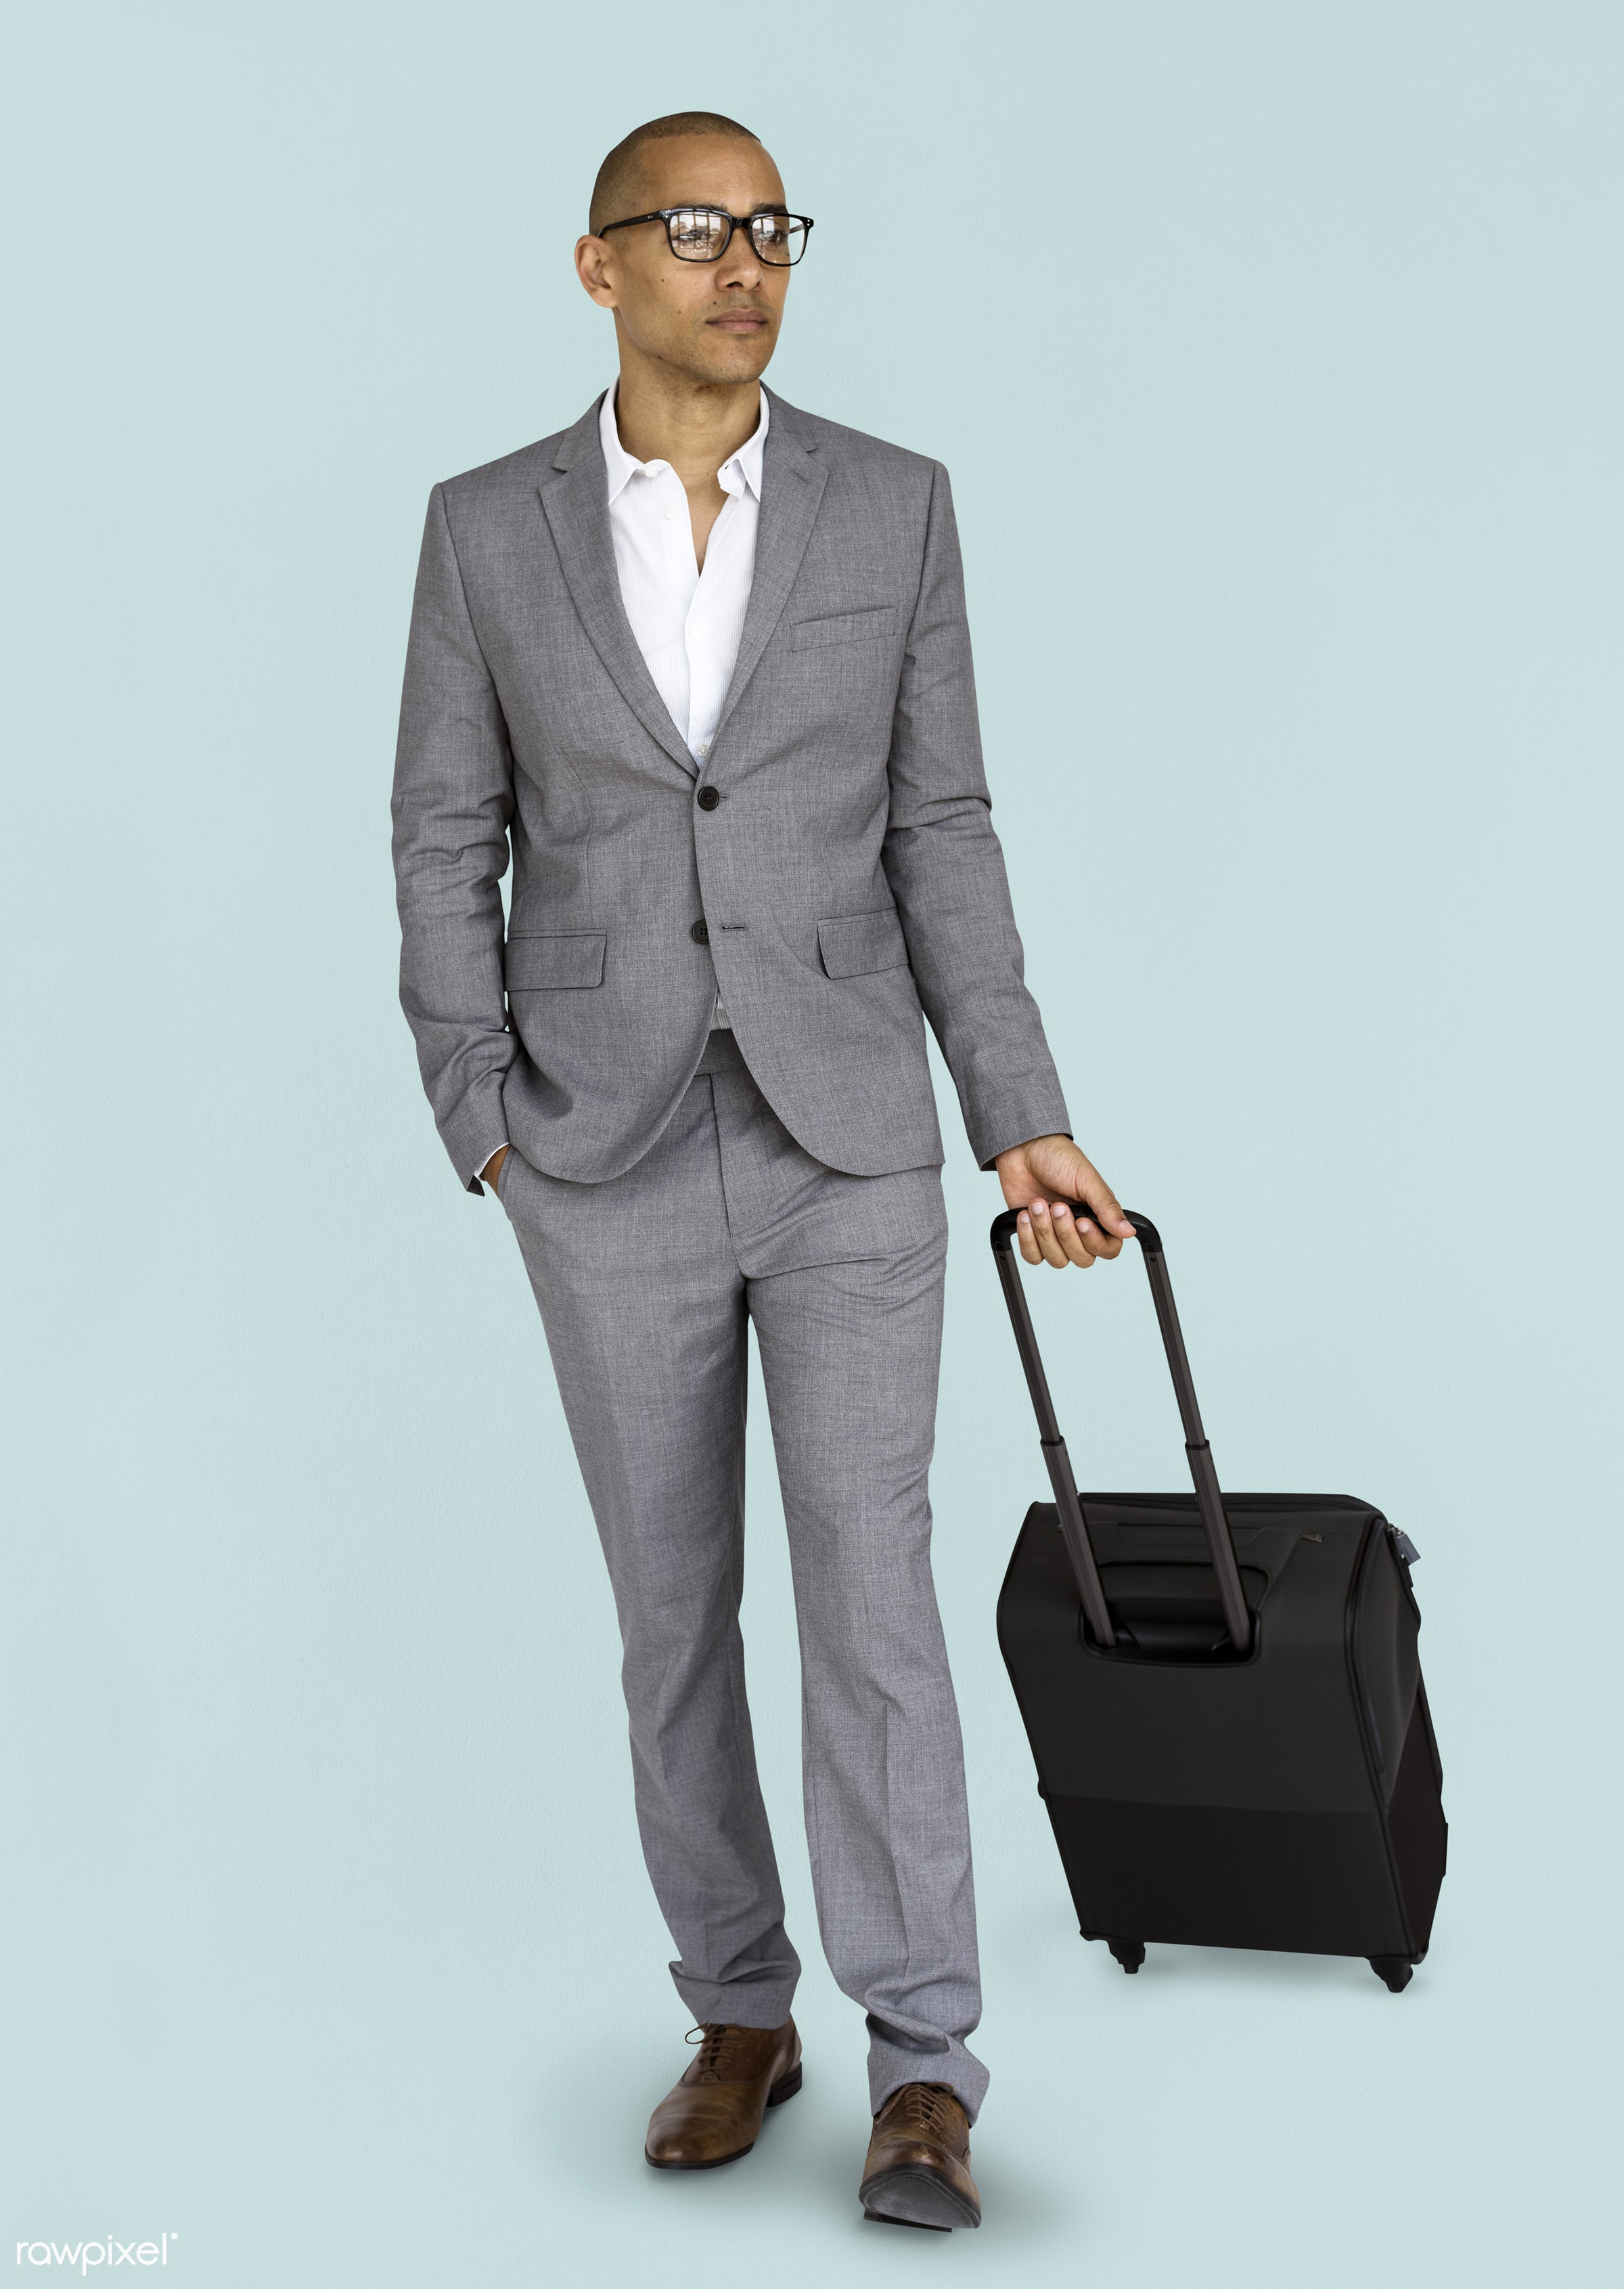 studio, face, person, glasses, travel, people, business, businessman, trip, man, isolated, suitcase, male, traveler,...